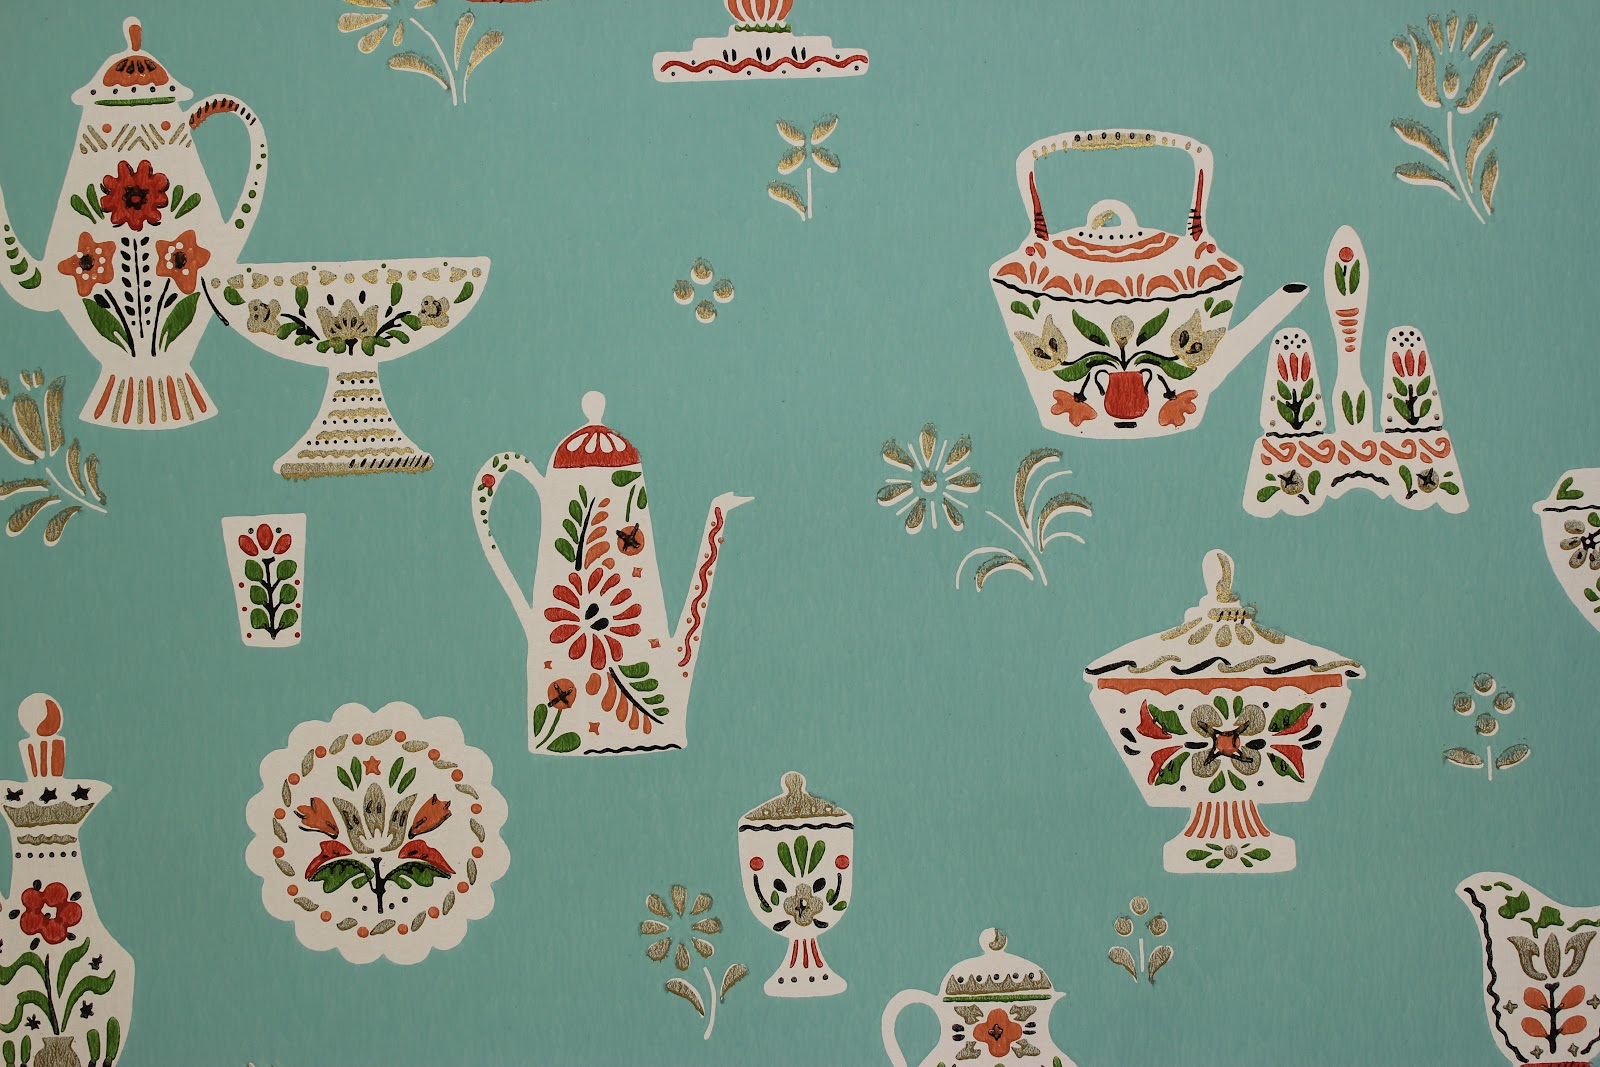 Rosies Vintage Wallpaper History of Kitchen Wallpaper